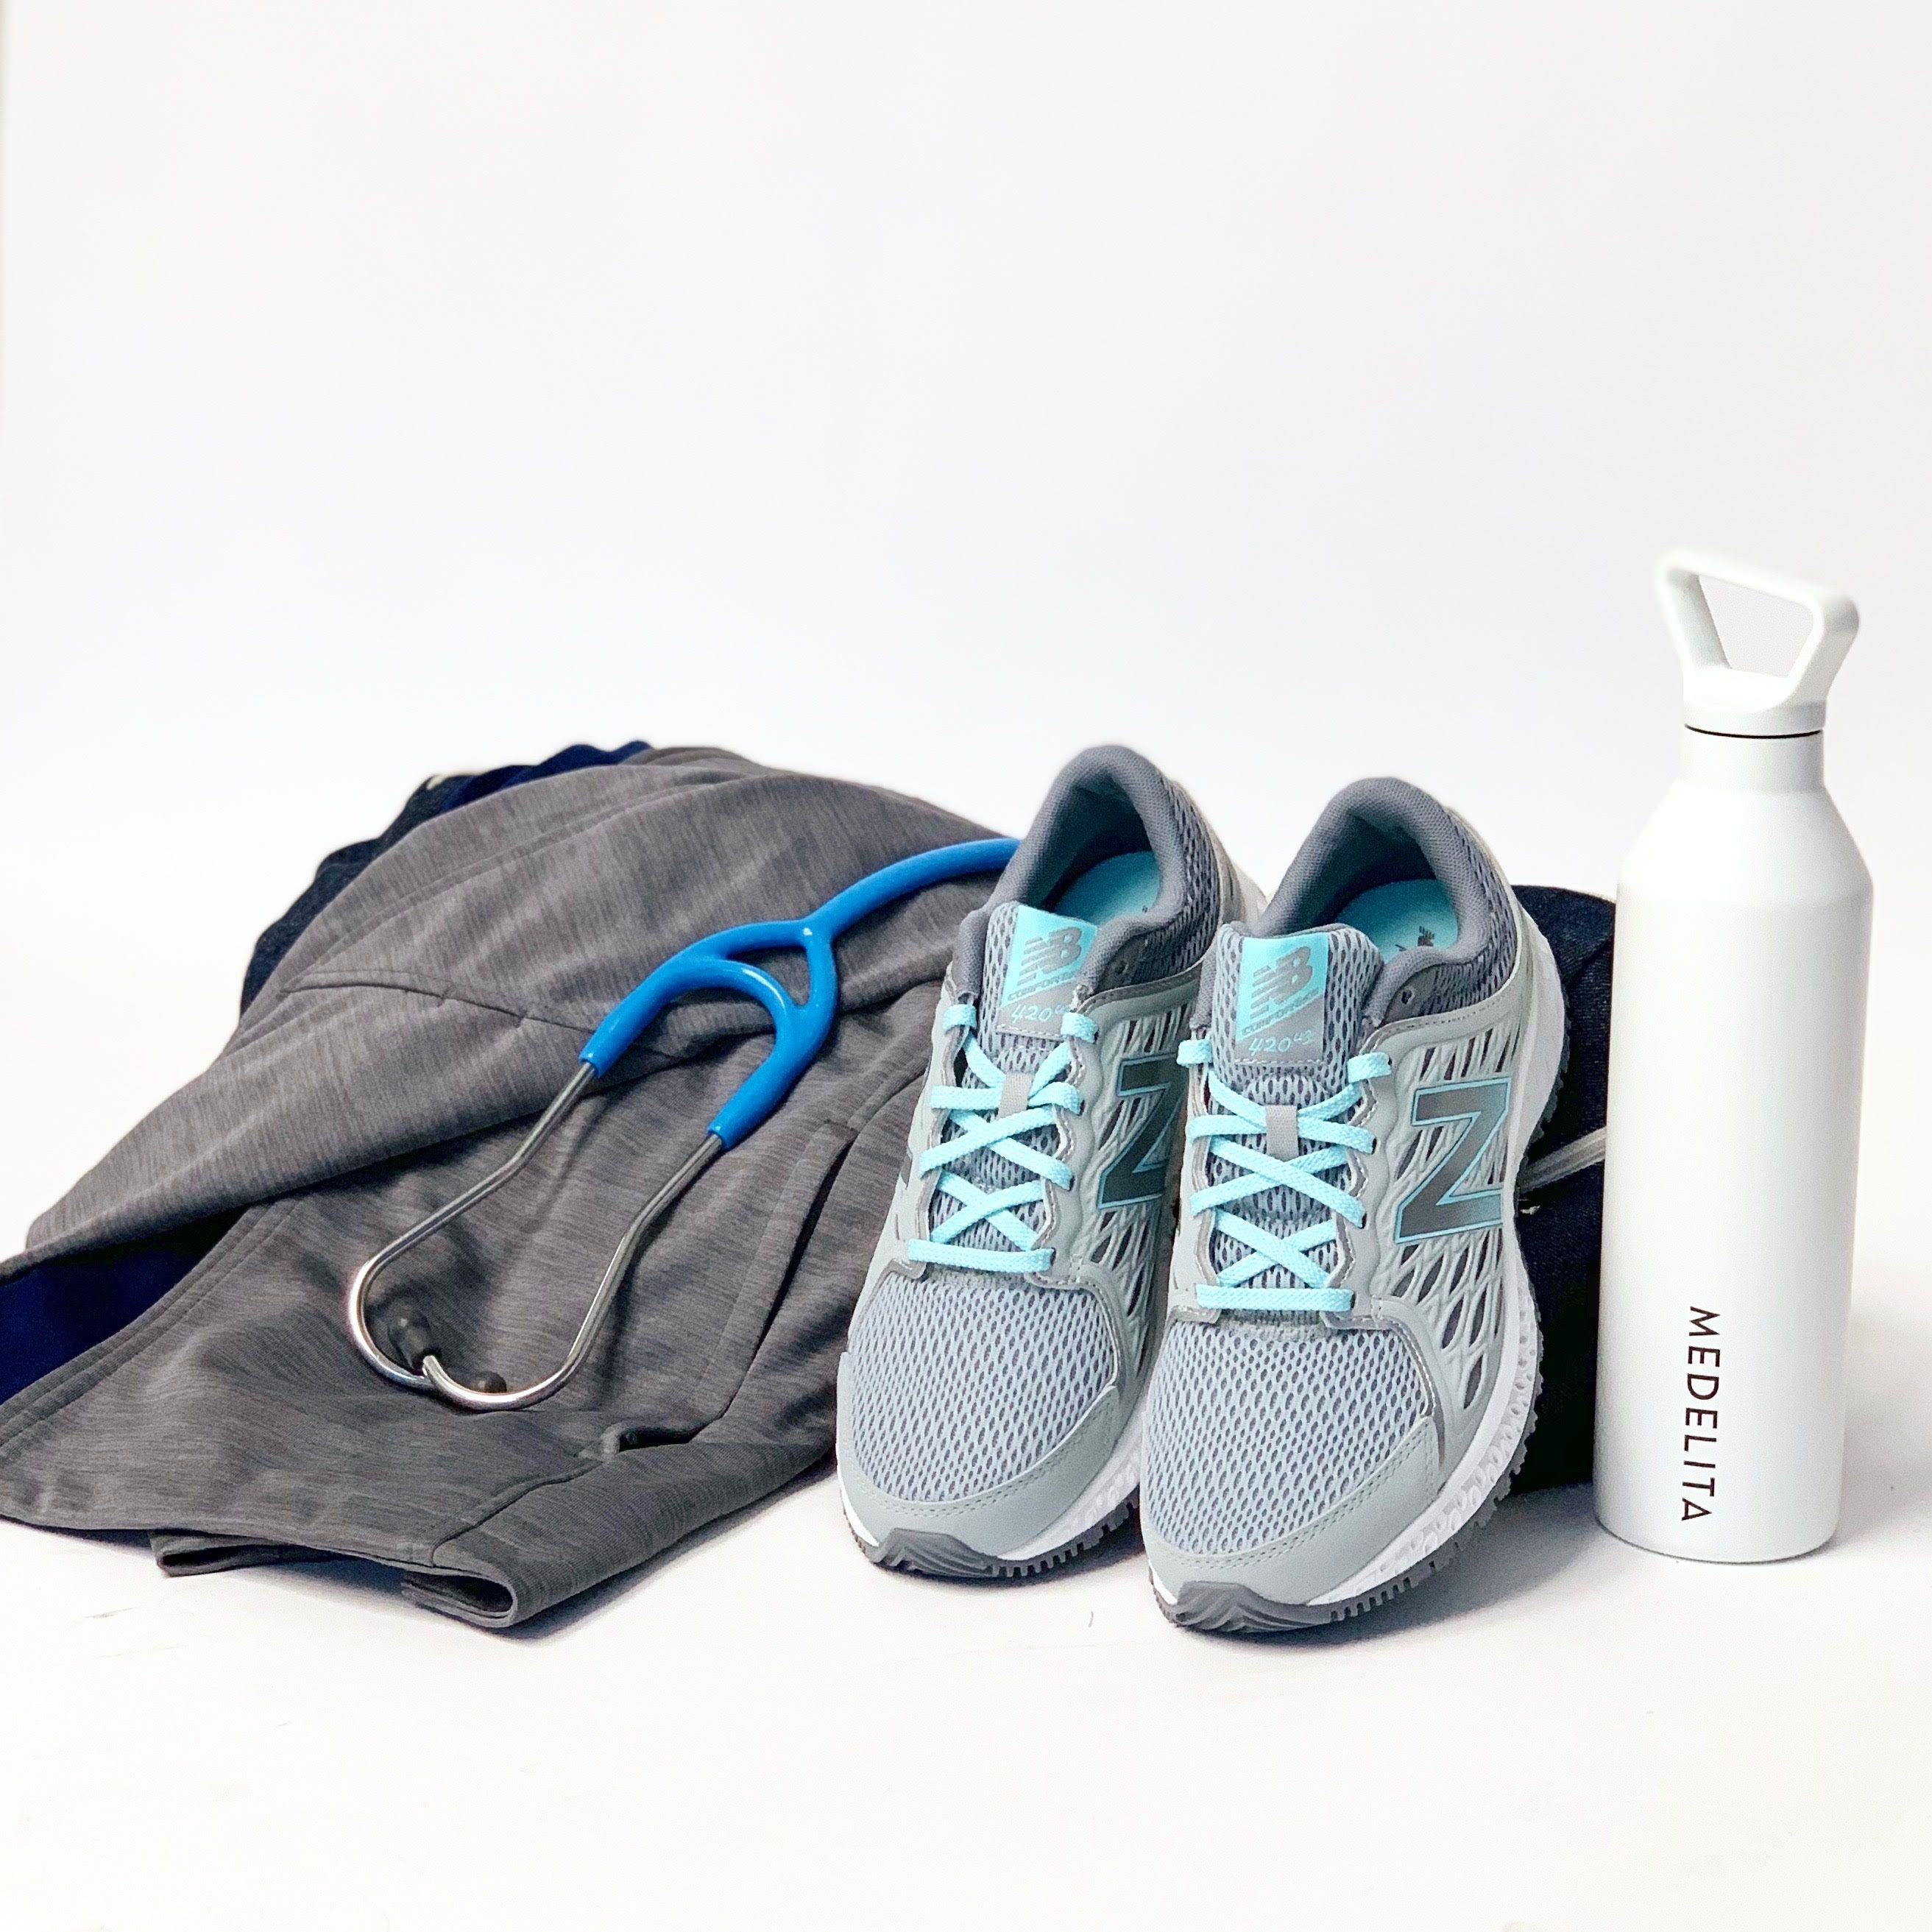 50+ Shoes for crews whole foods ideas ideas